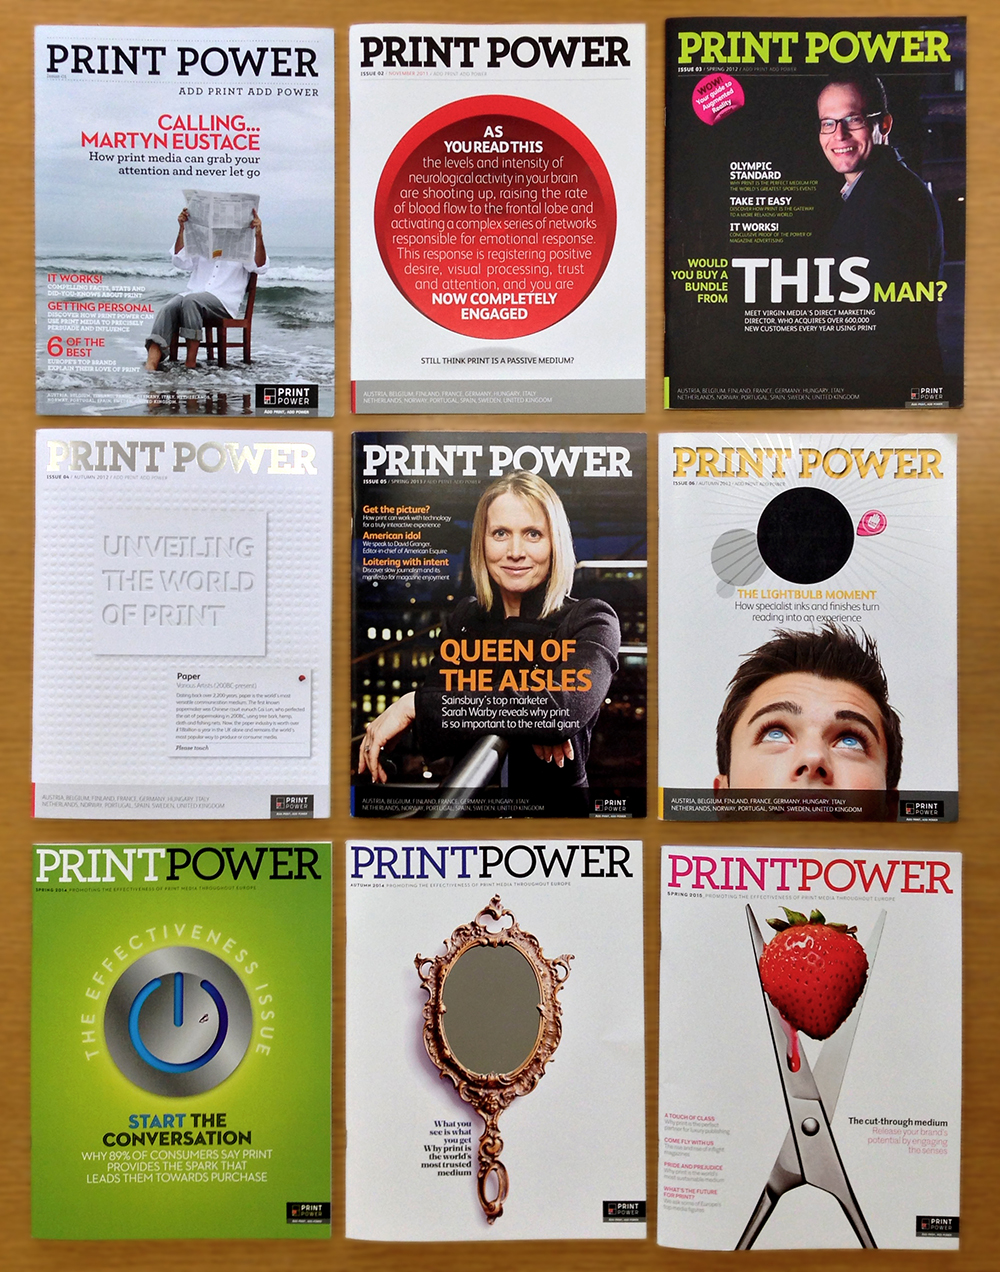 Print Power Magazine